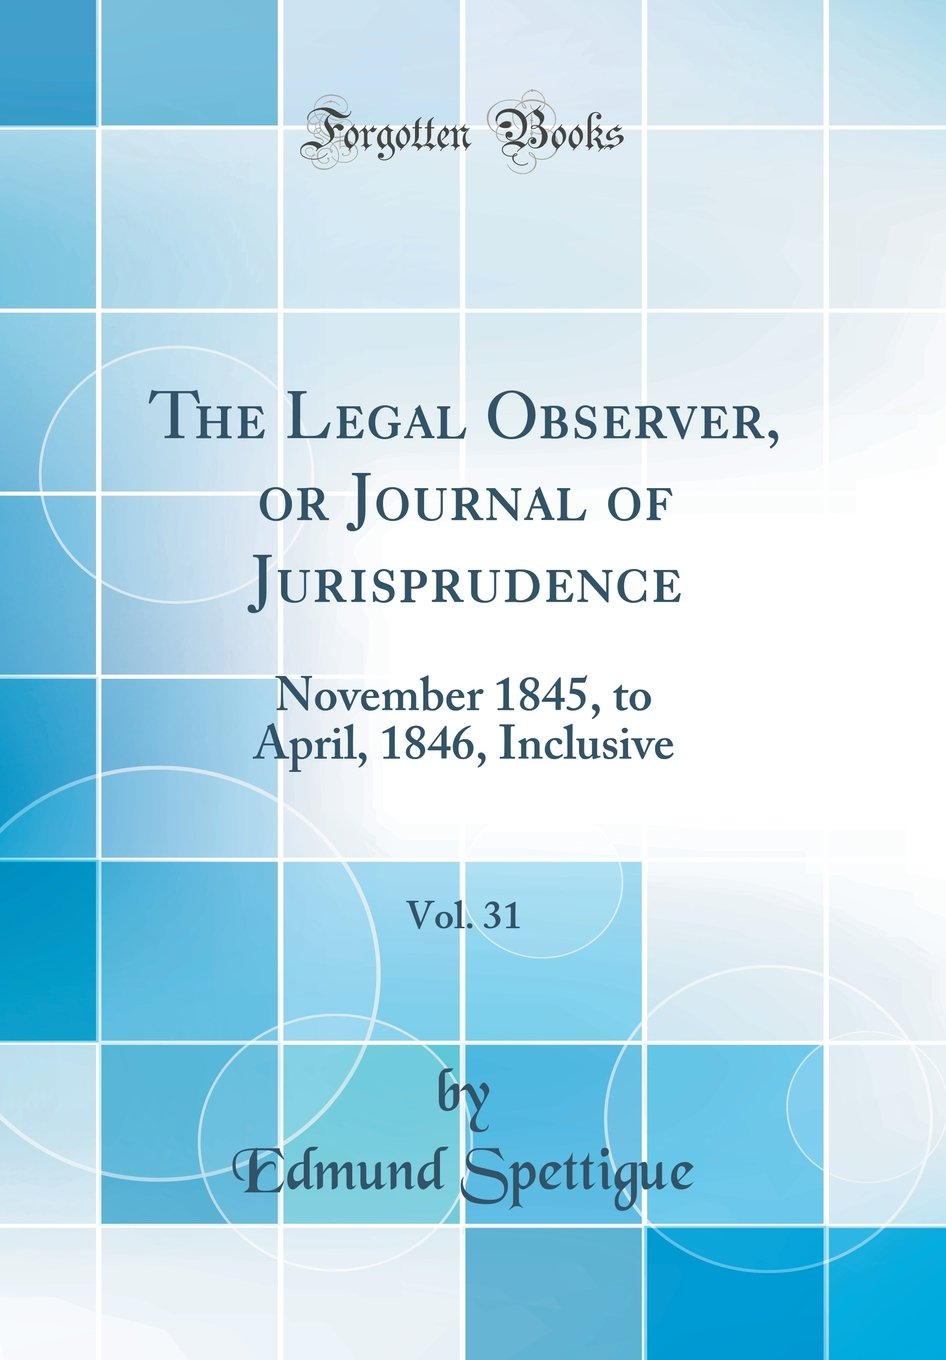 The Legal Observer, or Journal of Jurisprudence, Vol. 31: November 1845, to April, 1846, Inclusive (Classic Reprint) PDF